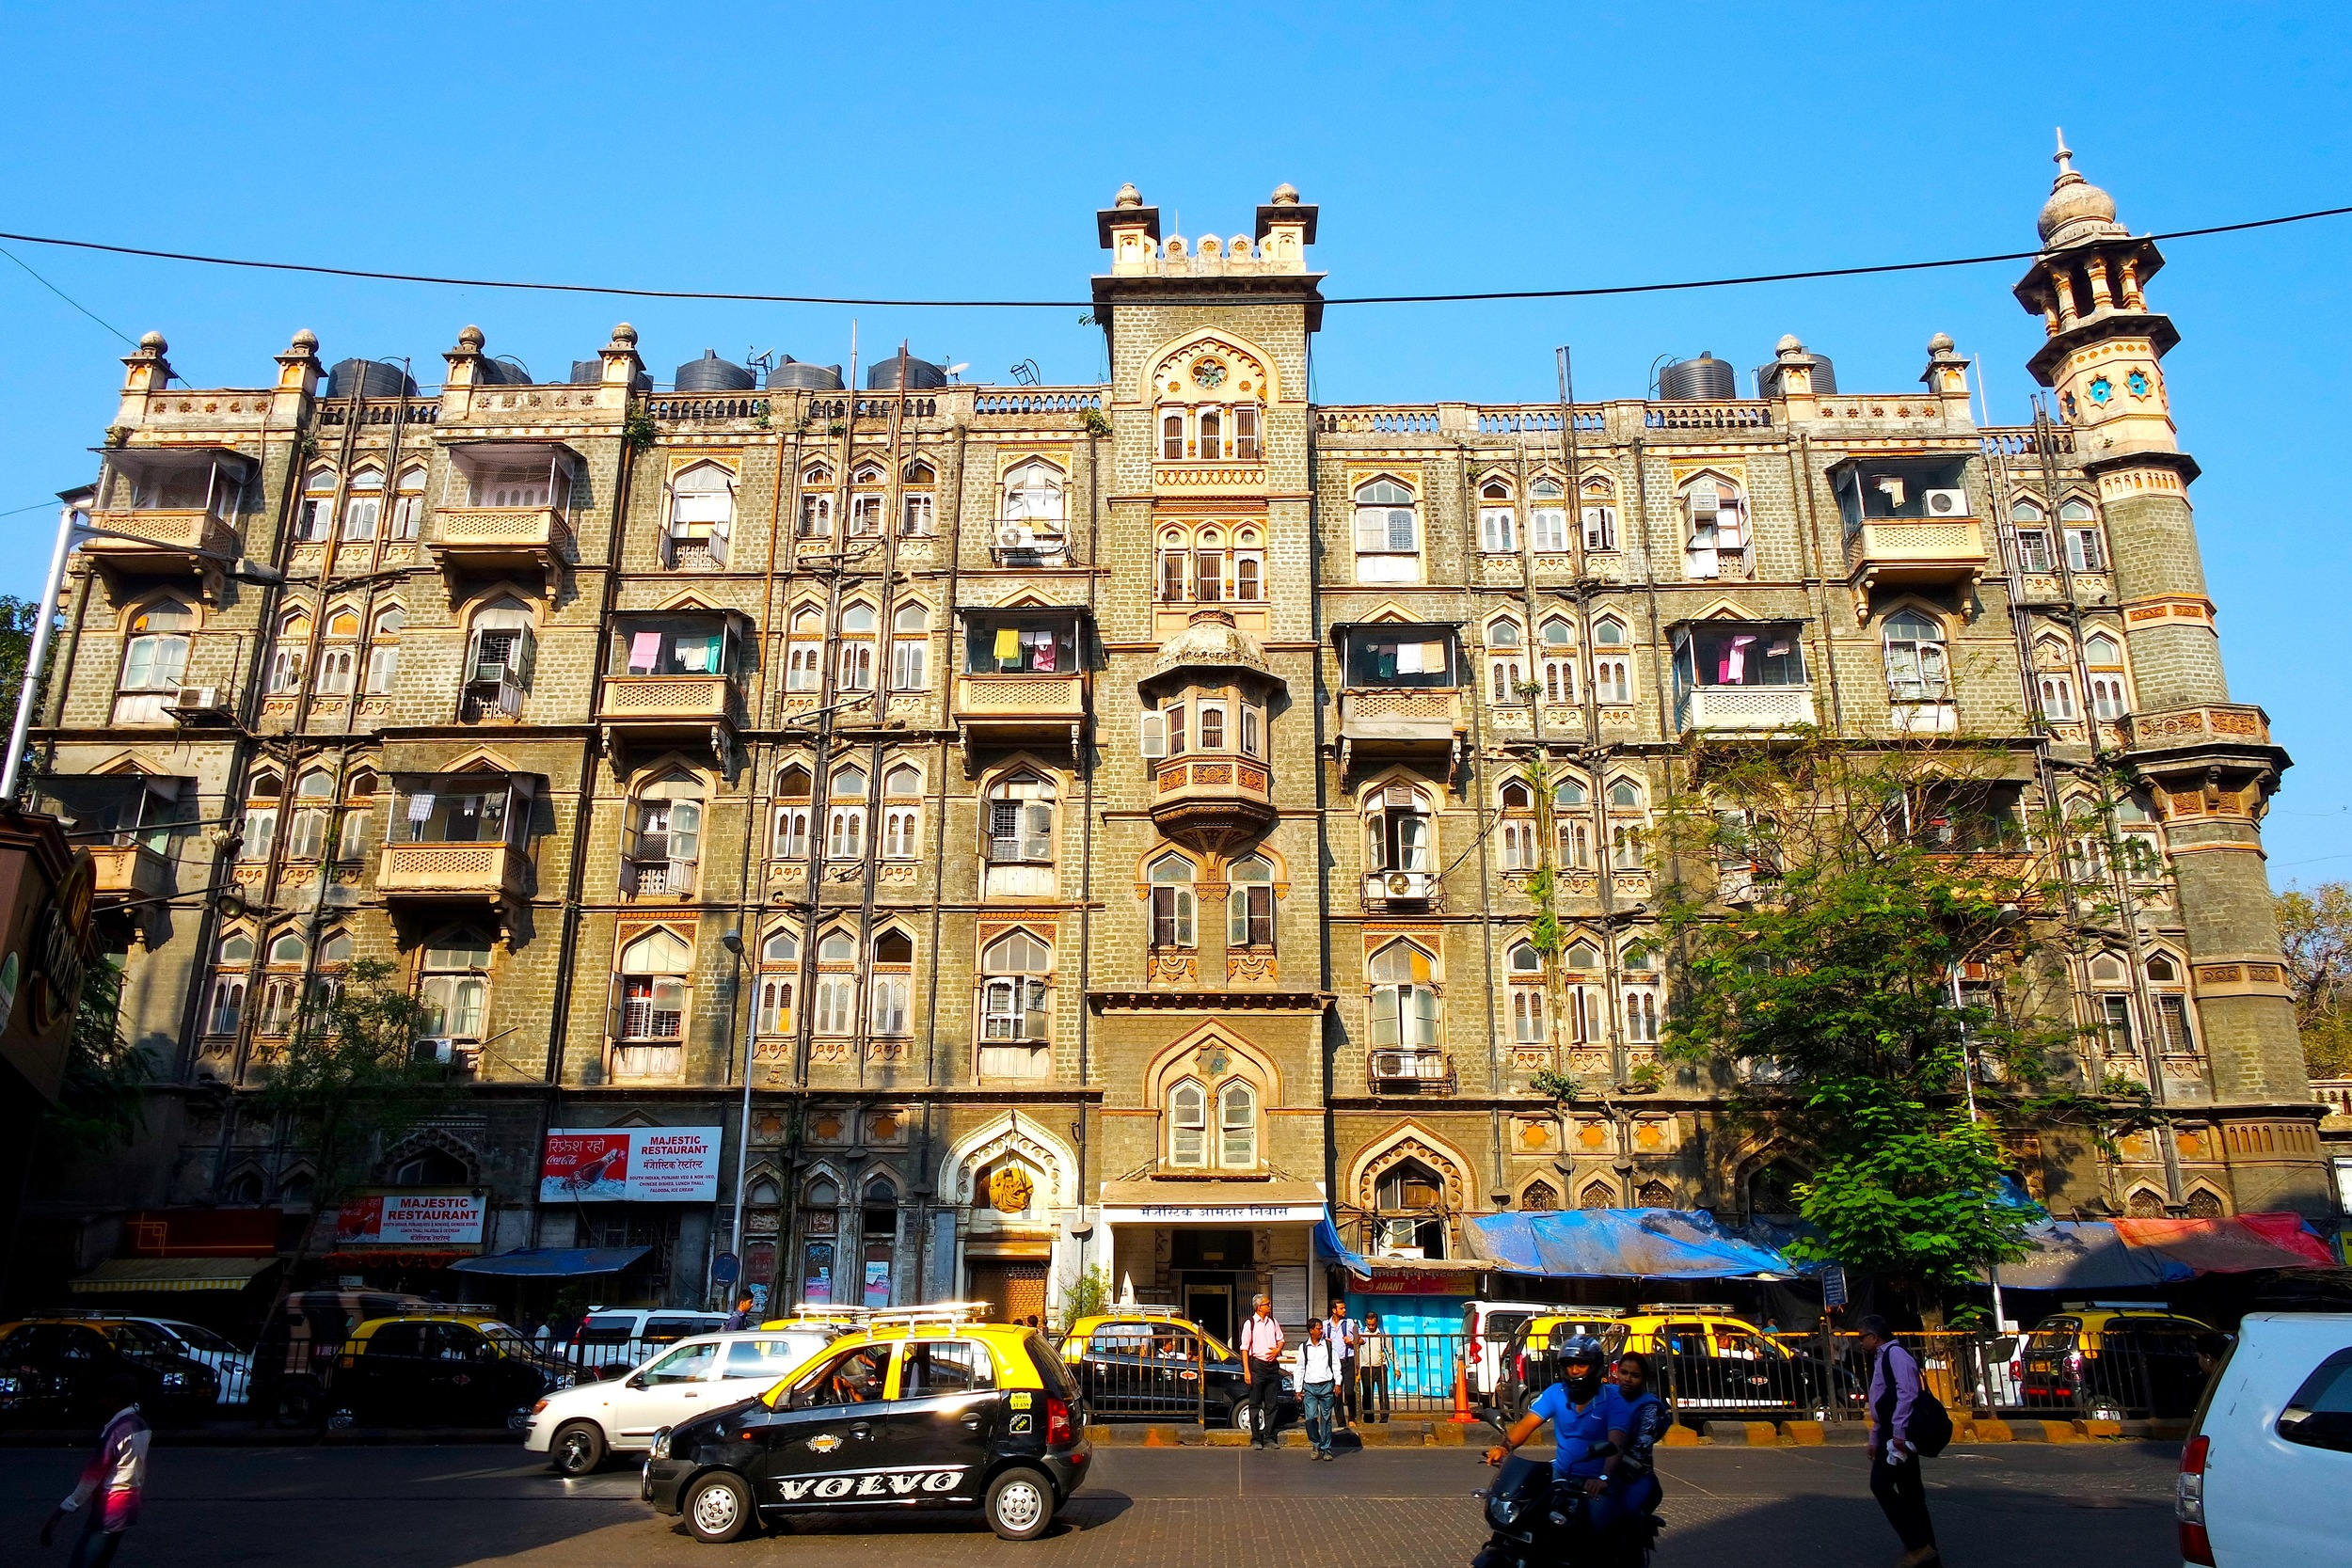 One of the many impressive buildings in Mumbai, India